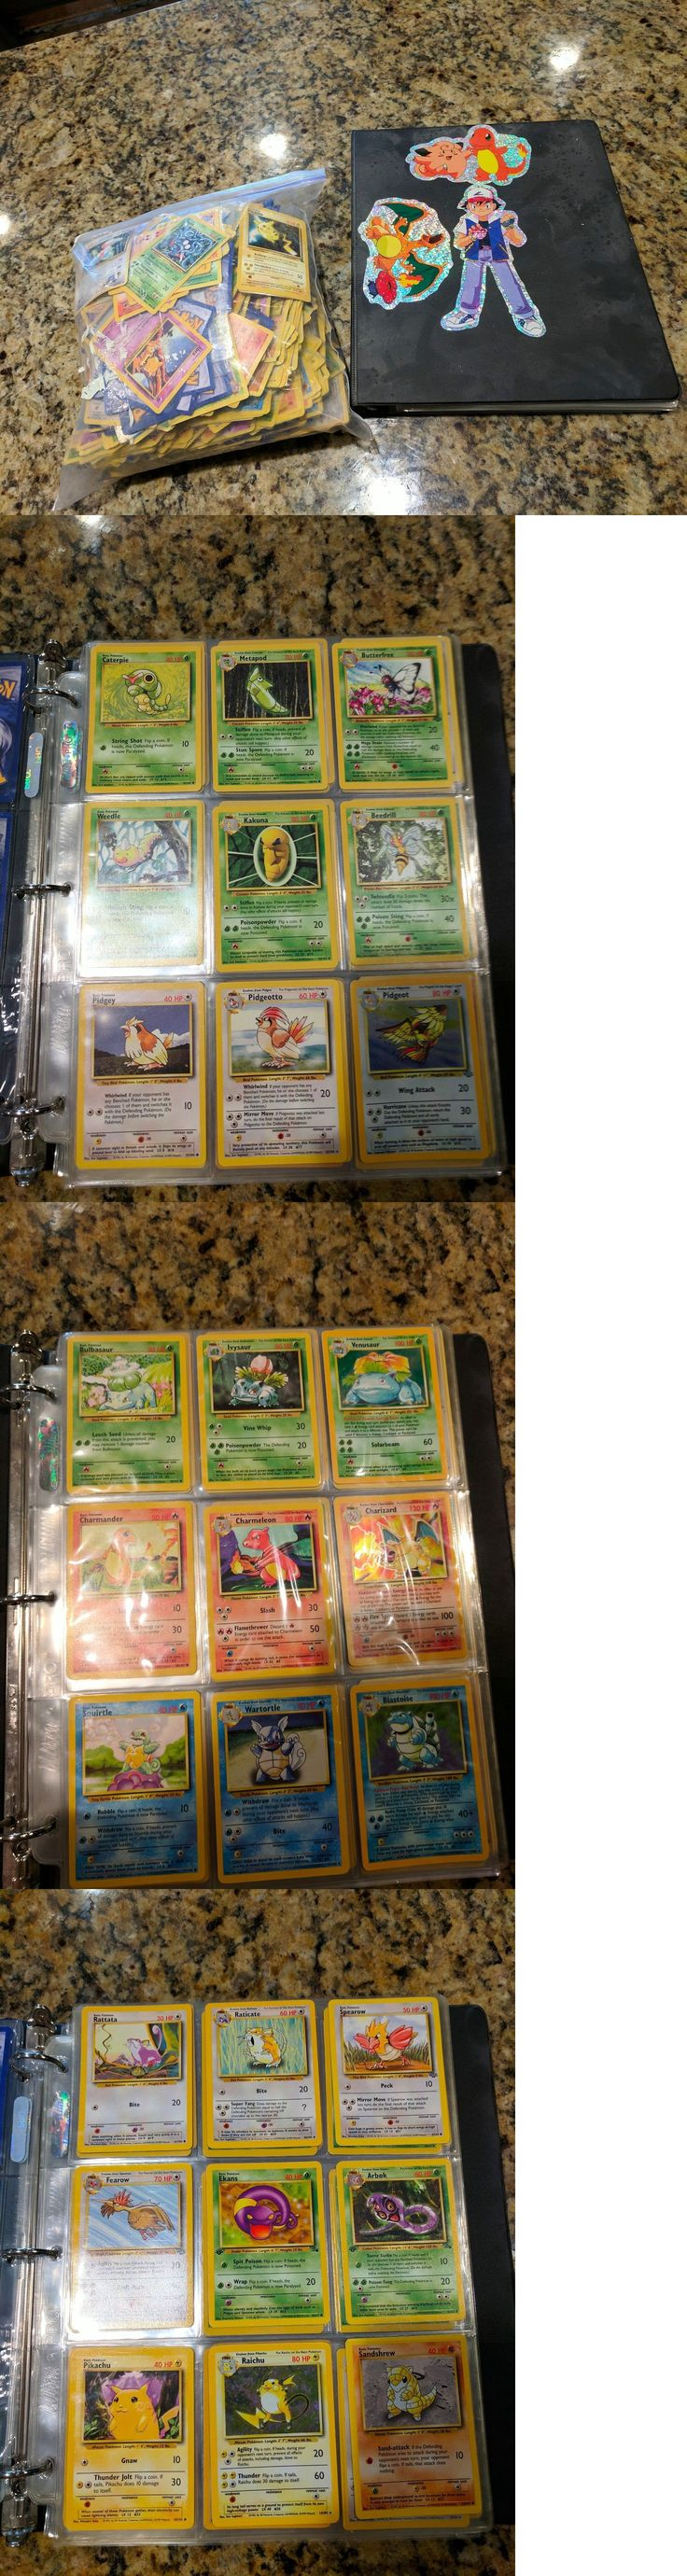 Pok mon Complete Sets 104046: Complete Set Of The Original 151 Pokemon Cards With Duplicate And 100+ Extras -> BUY IT NOW ONLY: $900 on eBay!